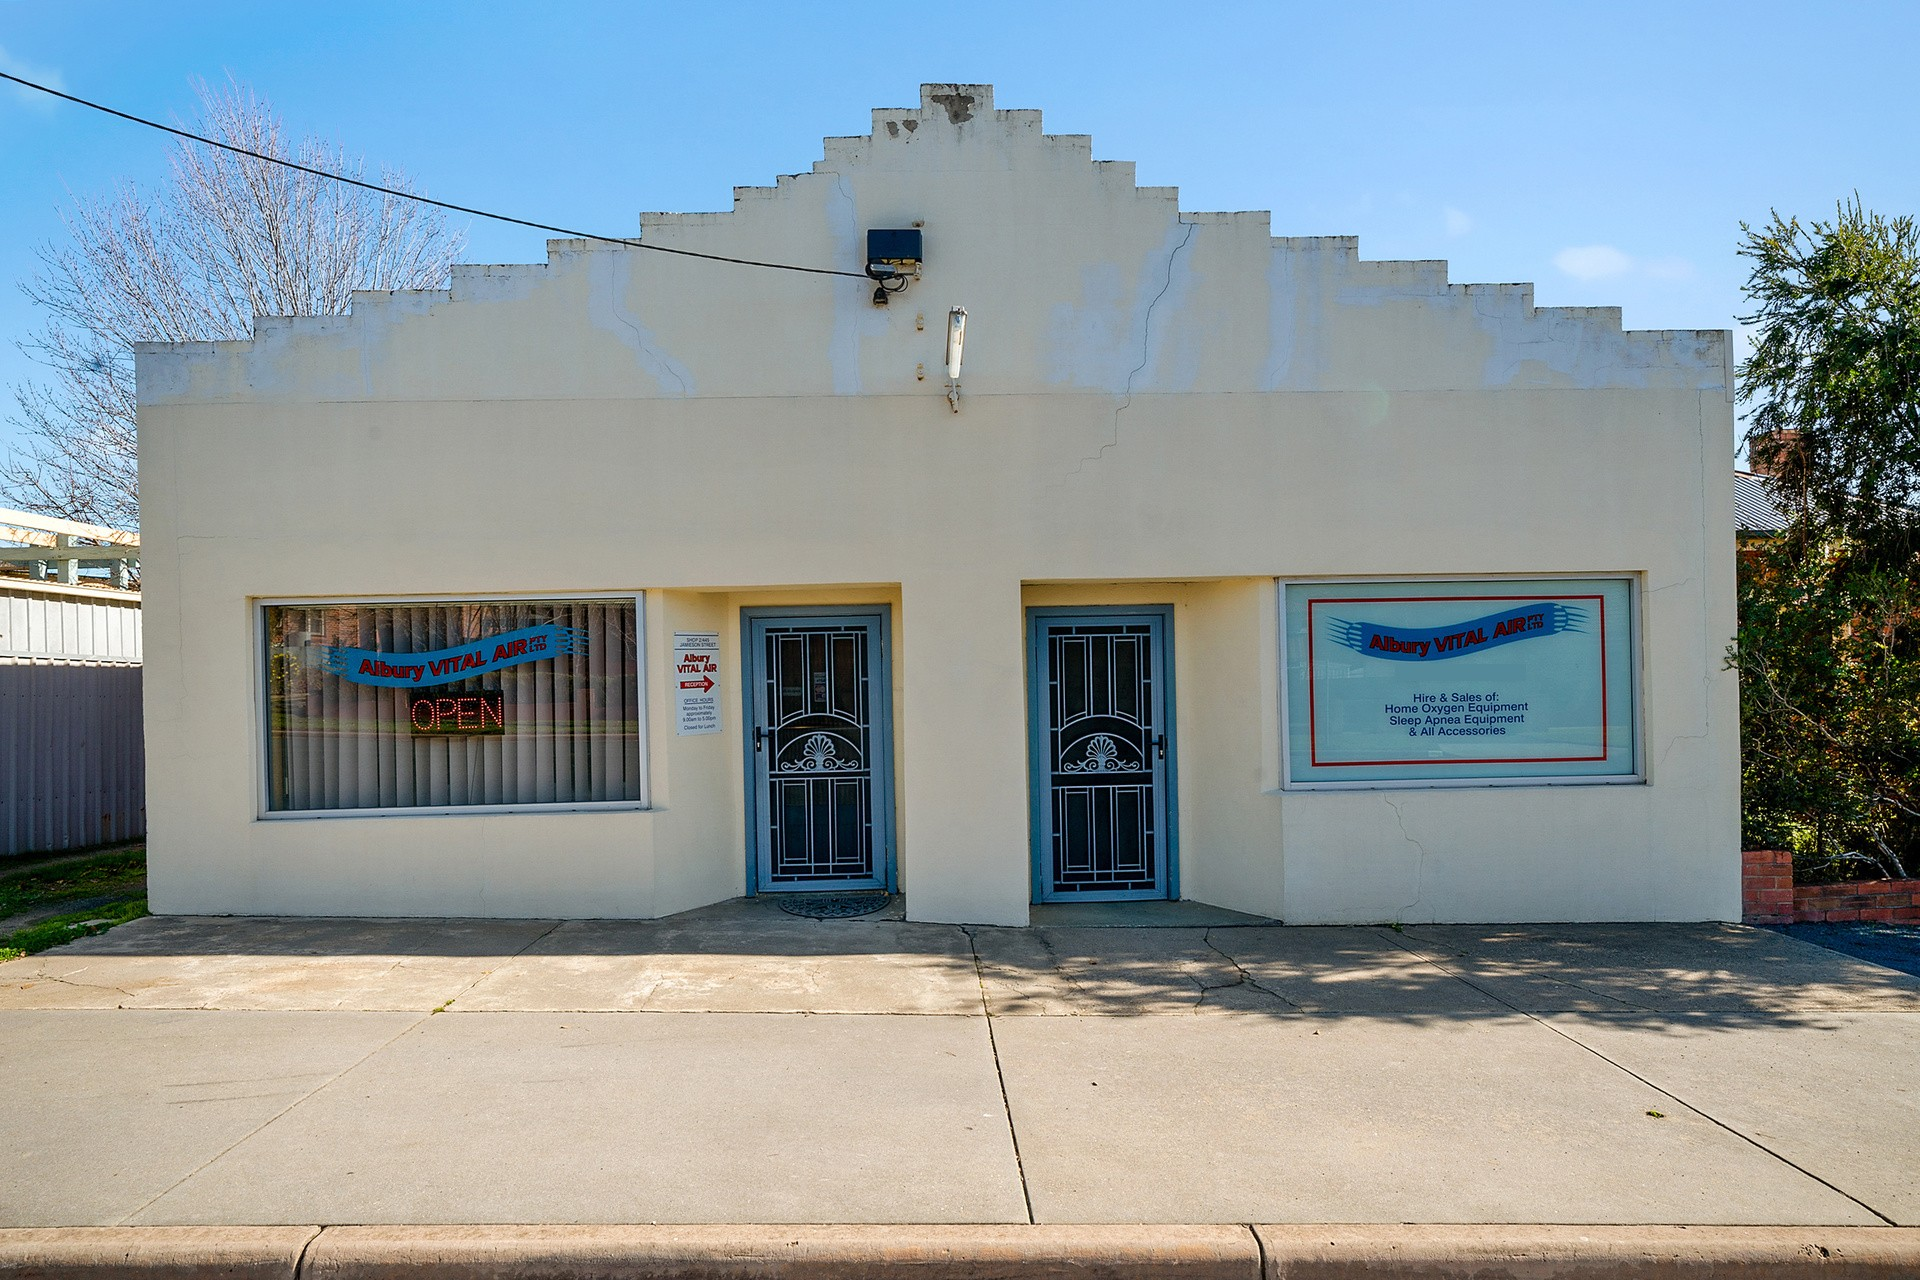 Private Commercial For Sale 445 Jamieson Street East Albury NSW 2640